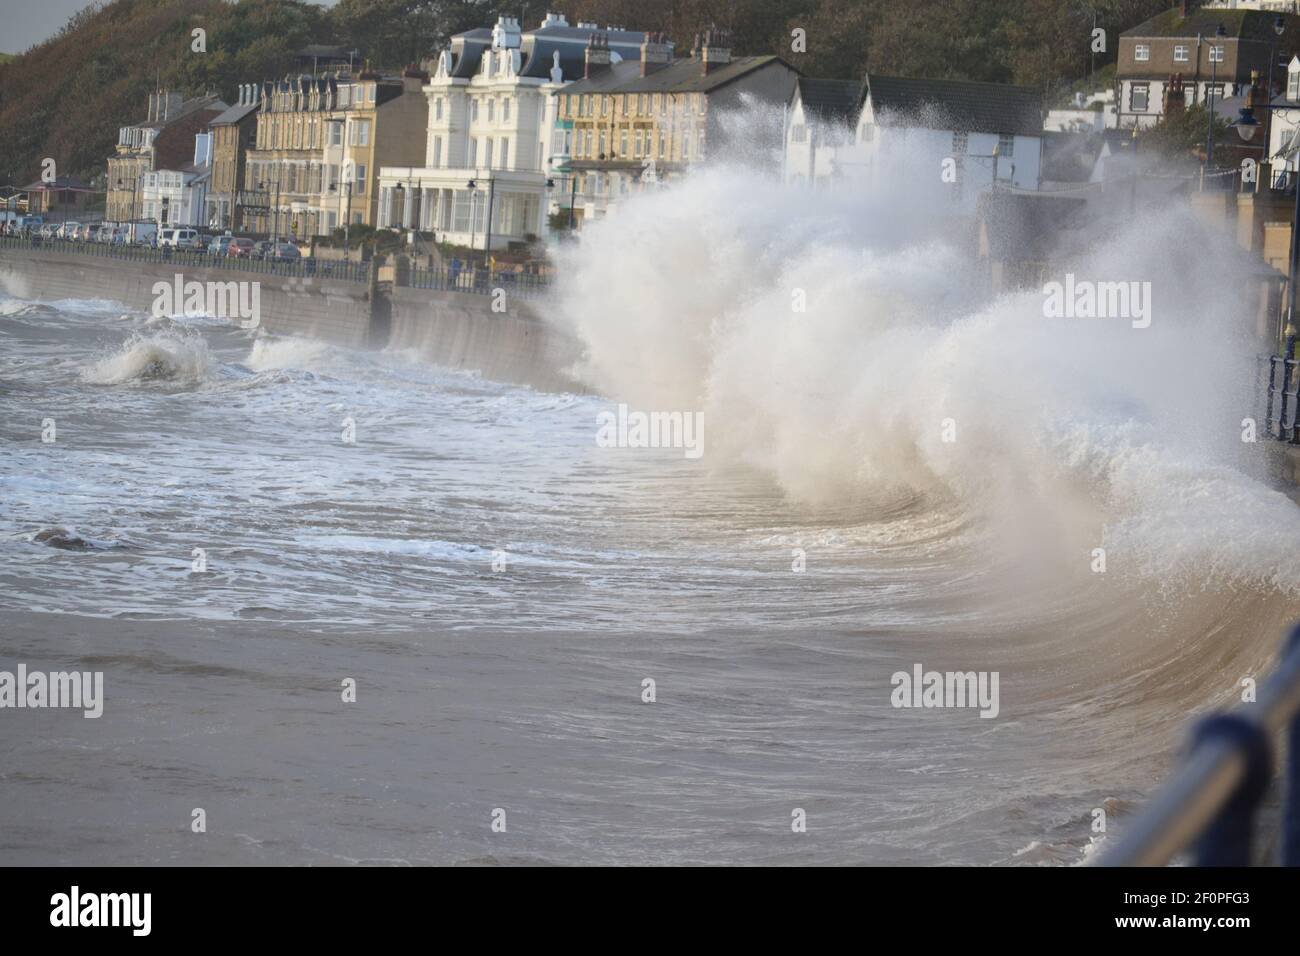 Stormy North Sea - Waves Crashing Into Sea Wall - White Water - Powerful Water - Dangerous Sea - Stormy Weather - Filey Bay - Yorkshire UK Stock Photo